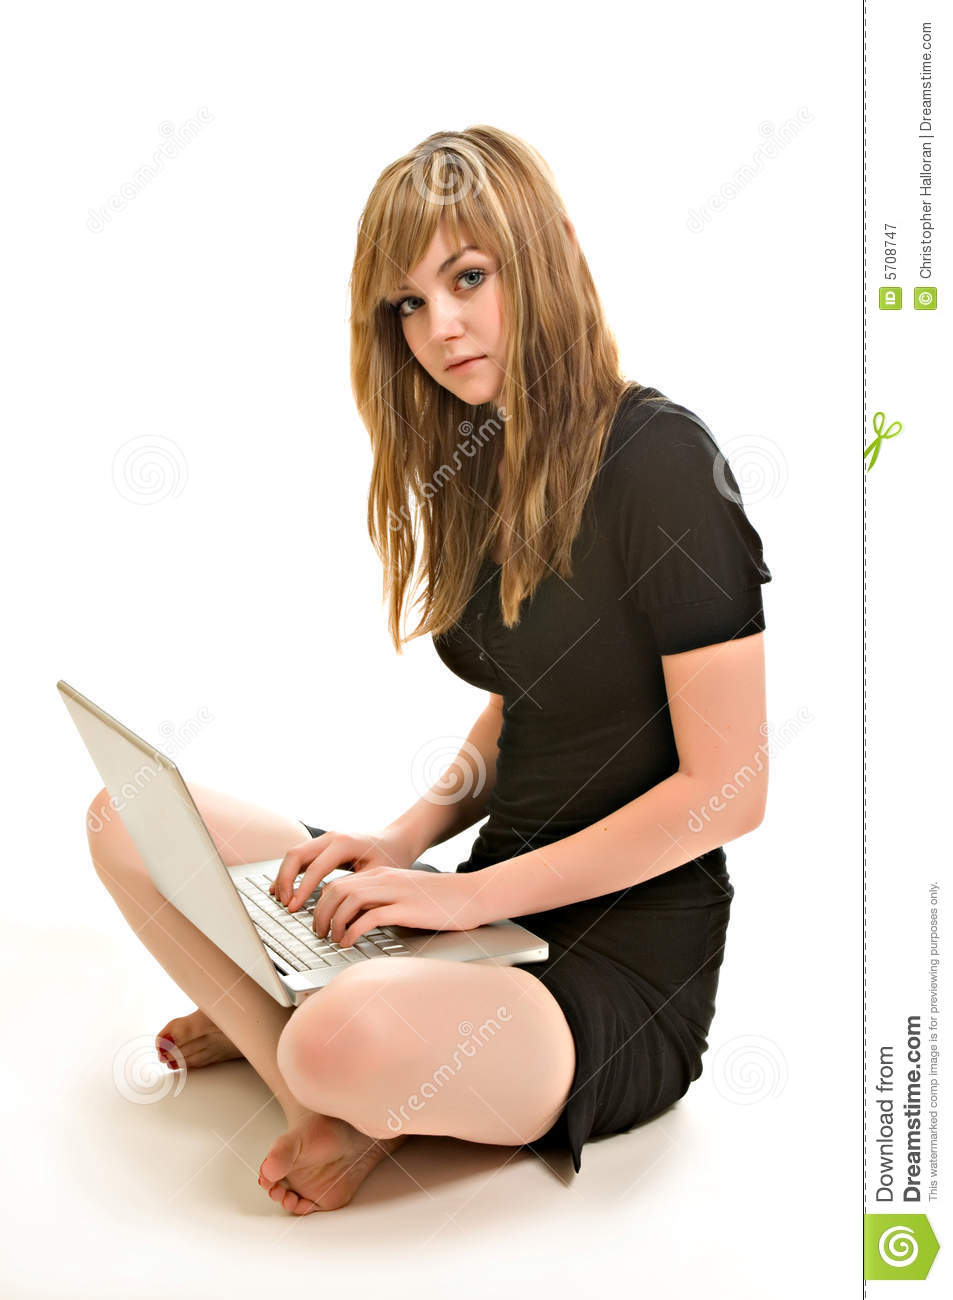 A pretty young woman working on a laptop